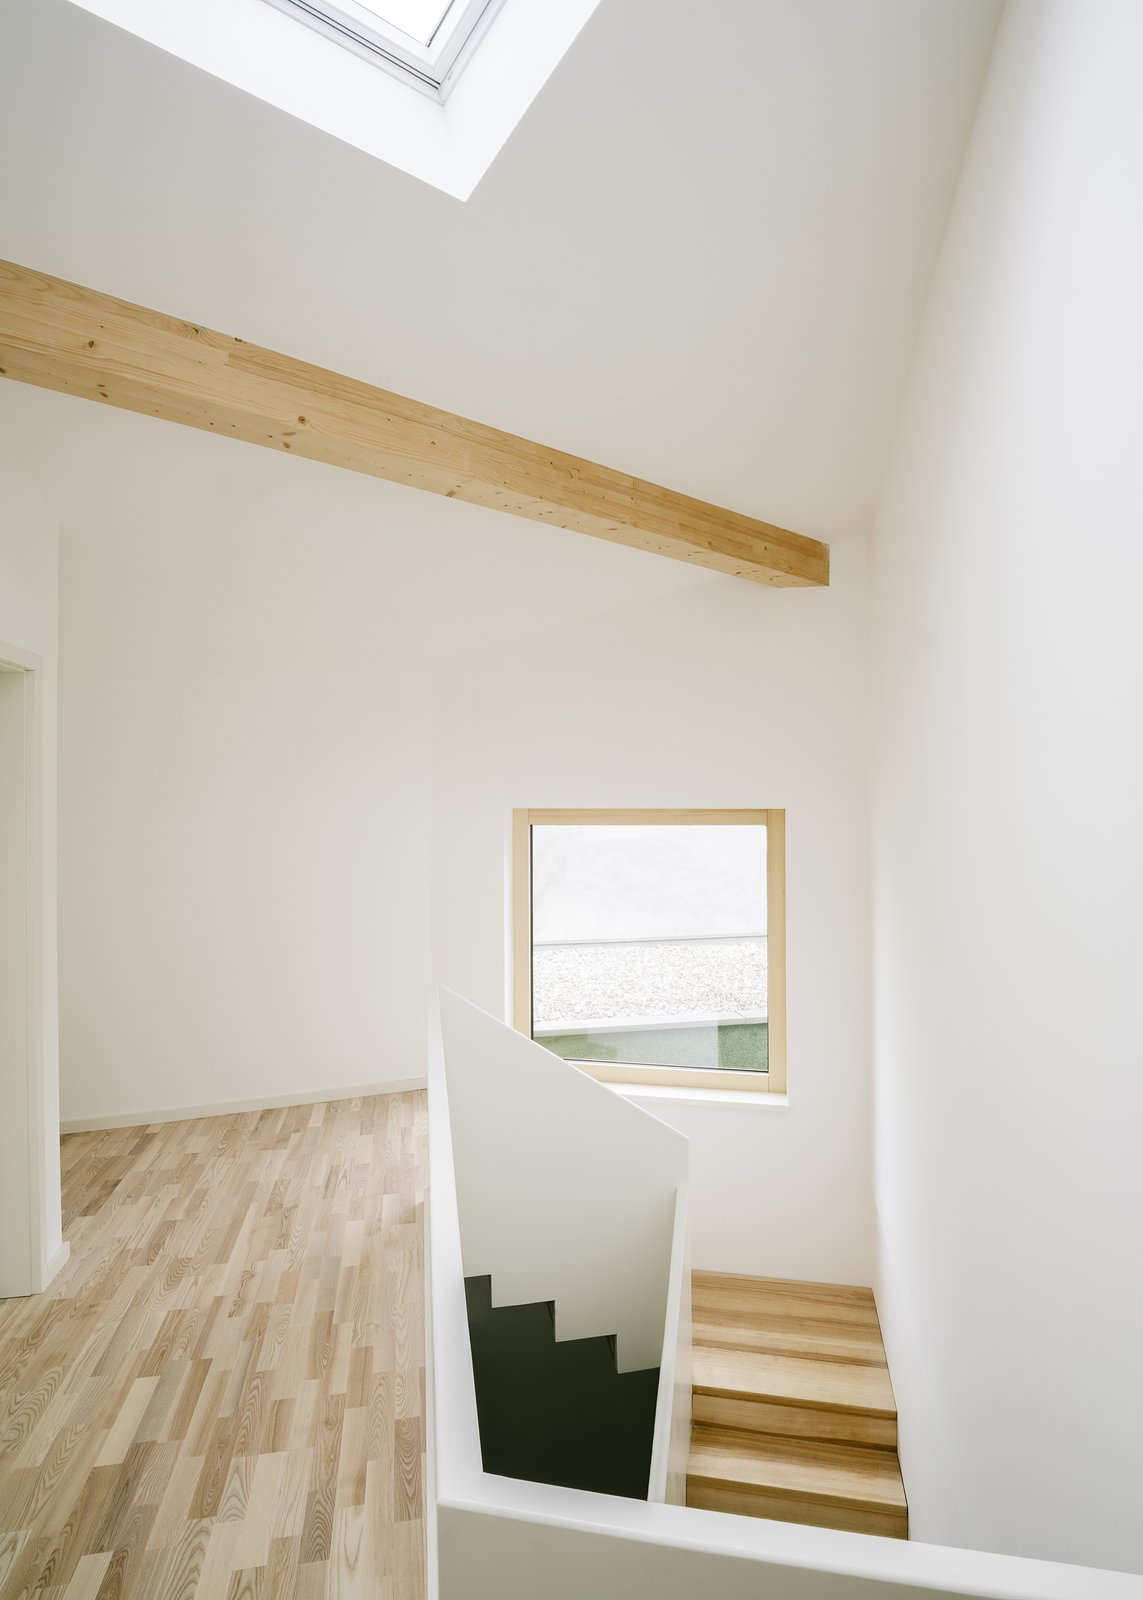 Staircase and Wood Tread  Haus P by Project Architecture Company